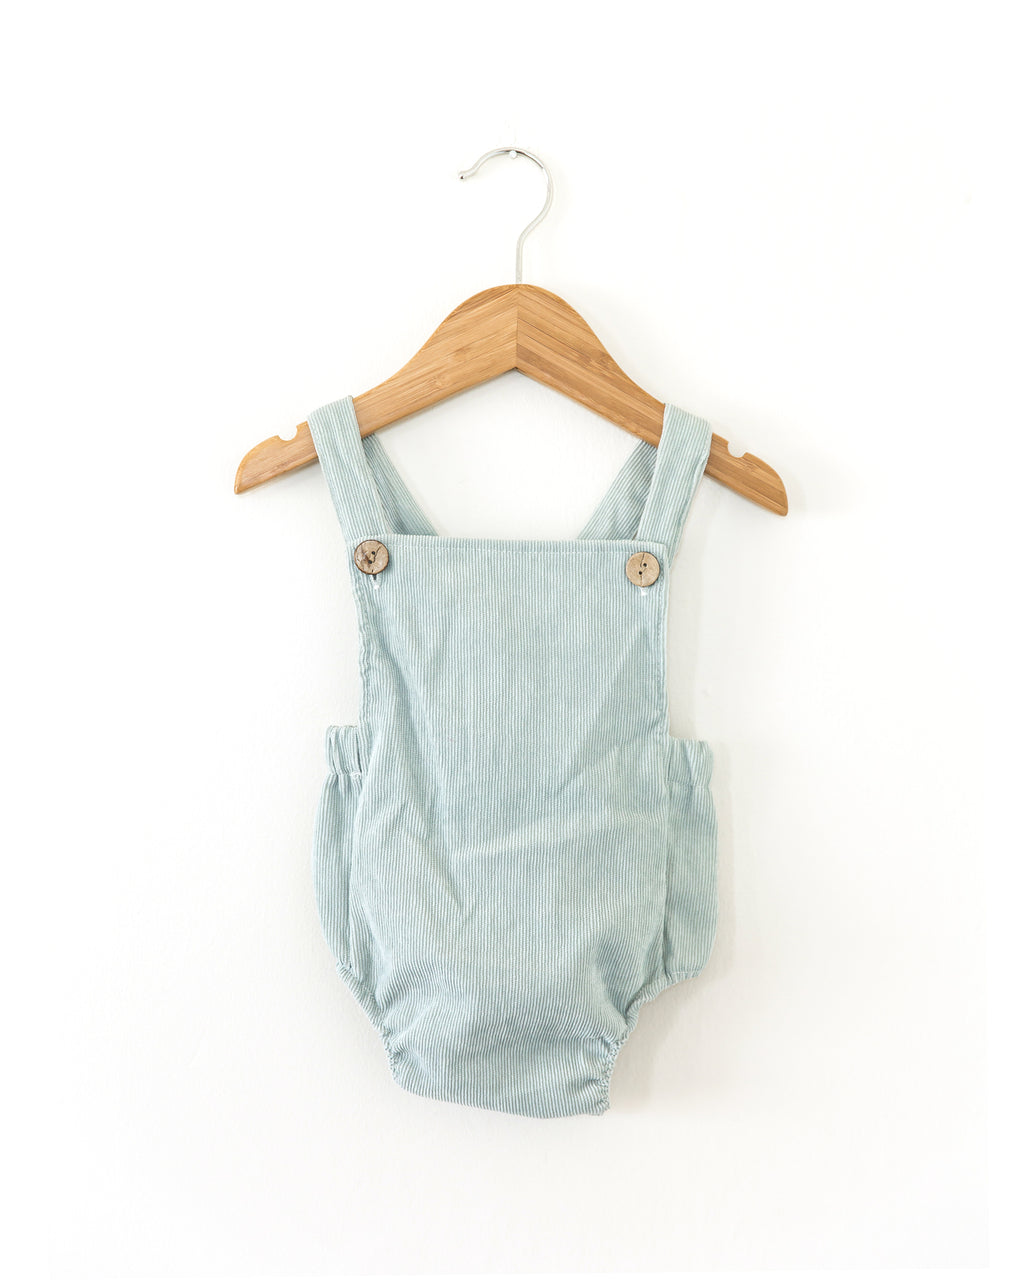 Vintage Corduroy Romper in Blue - Reverie Threads